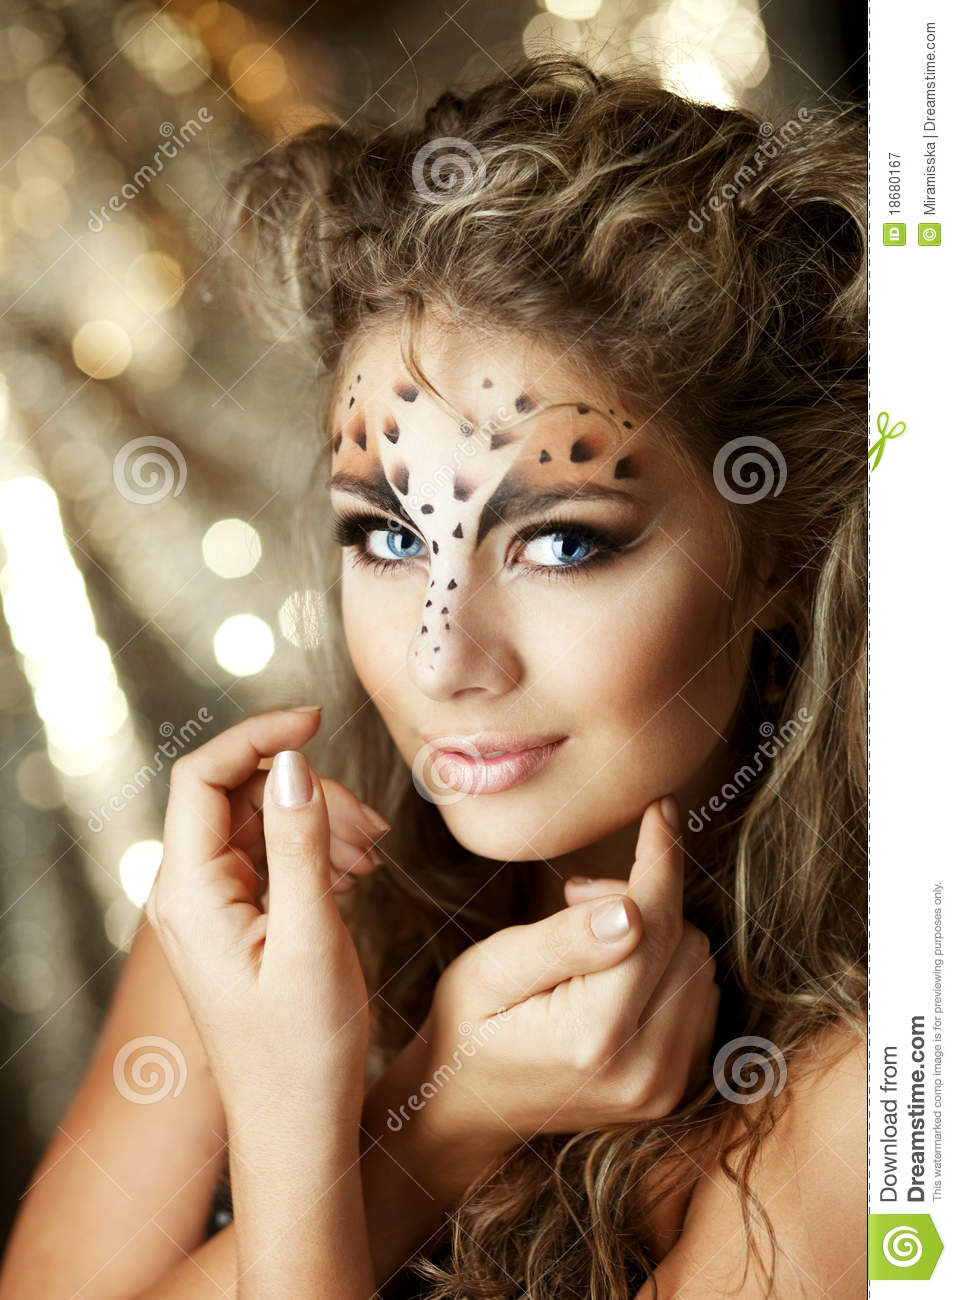 girl with an unusual make up as a leopard stock image image 18680167. Black Bedroom Furniture Sets. Home Design Ideas